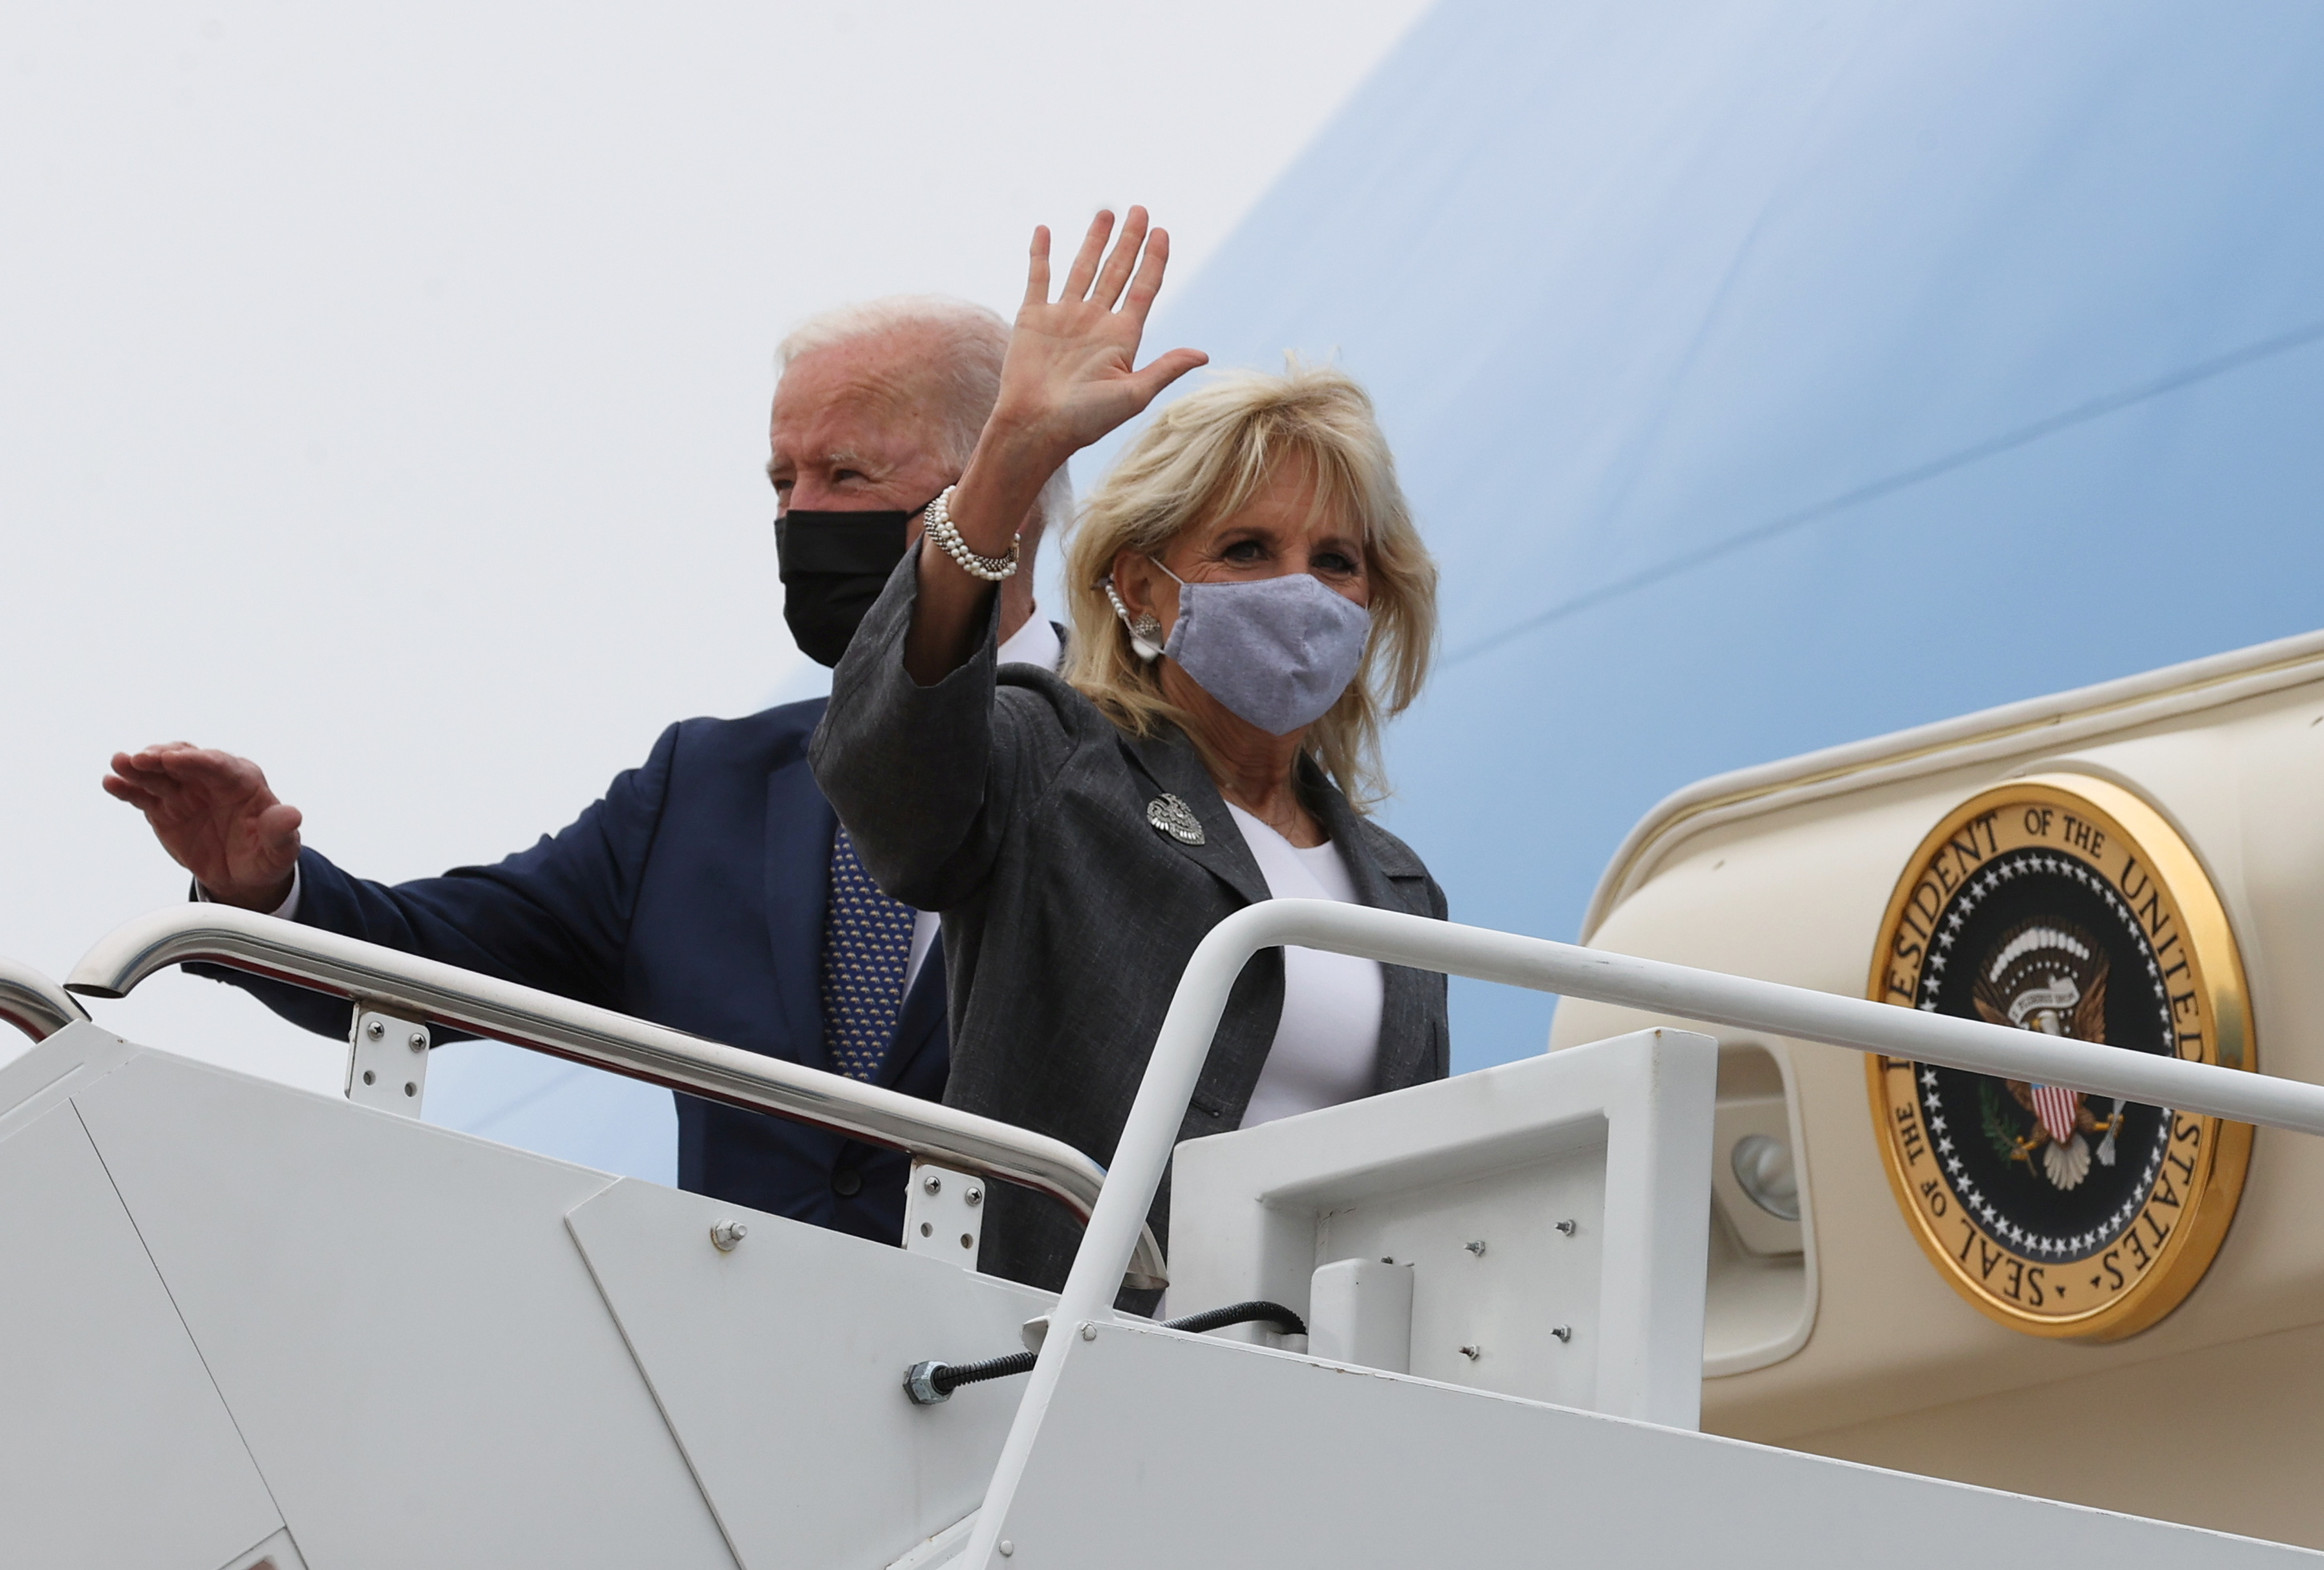 U.S. President Joe Biden and first lady Jill Biden wave as they board Air Force One for travel to Virginia from Joint Base Andrews, Maryland, U.S. May 3, 2021.  REUTERS/Jonathan Ernst